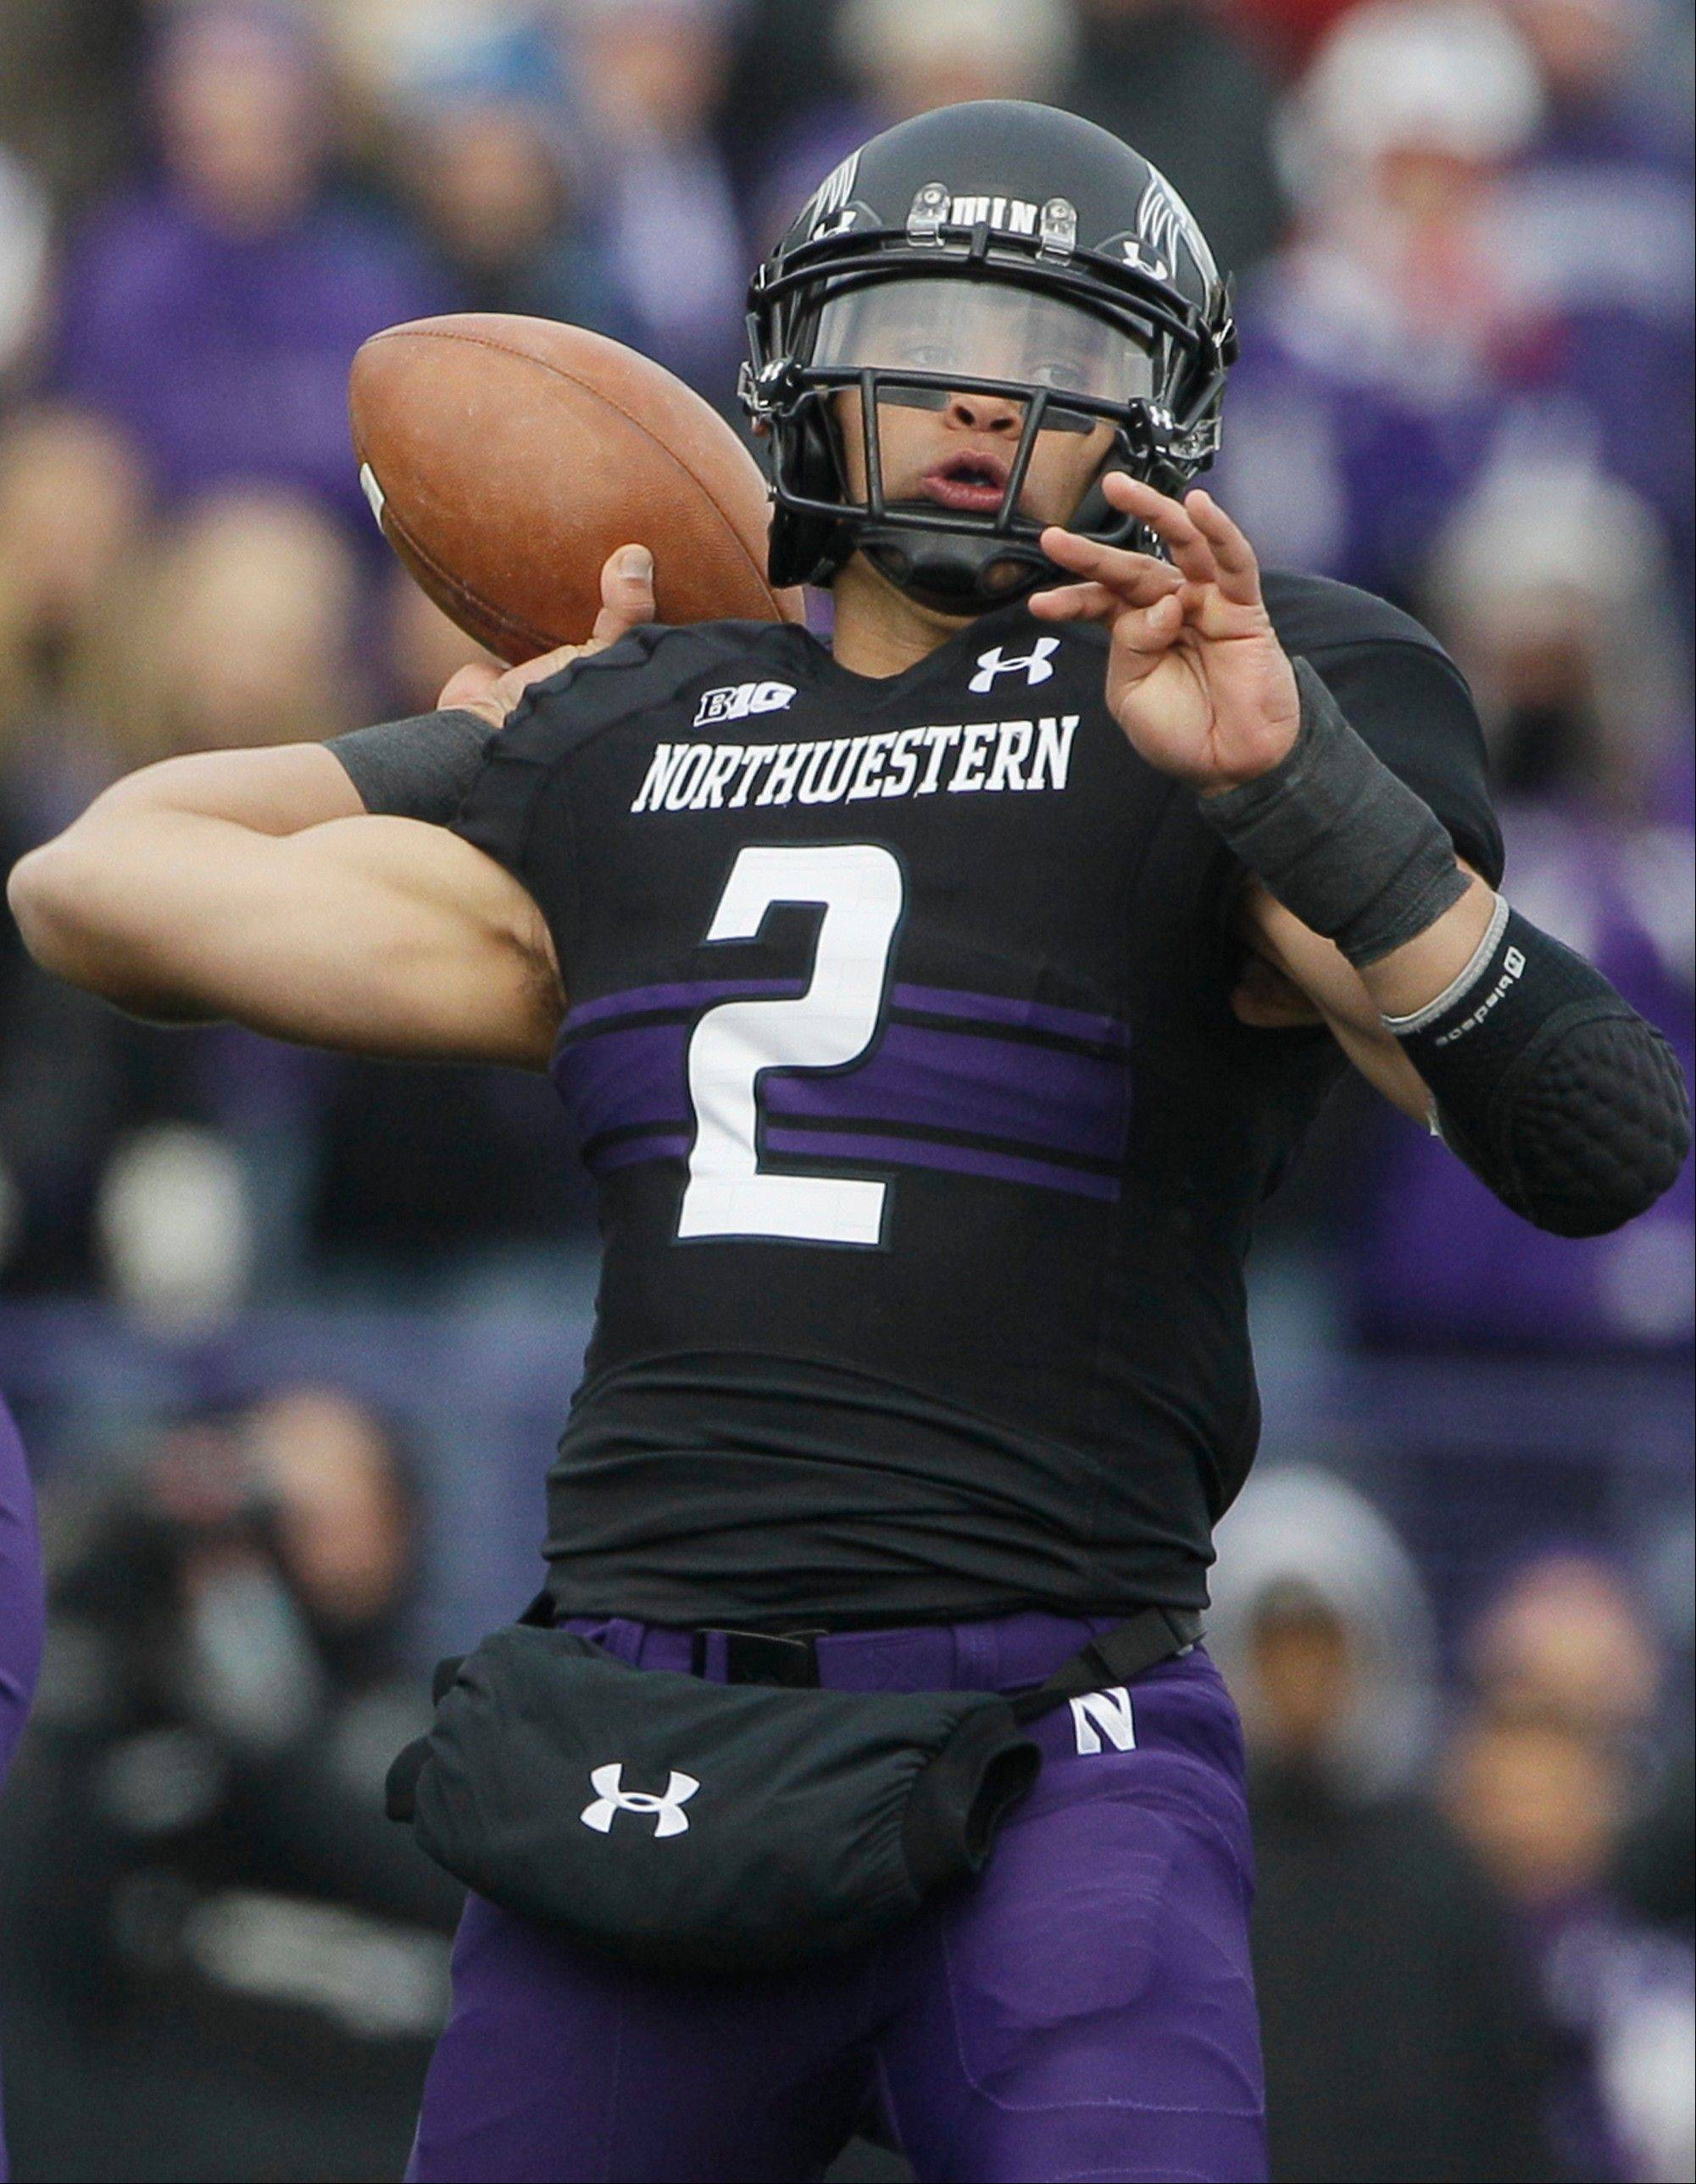 Quarterback Kain Colter and the Northwestern Wildcats open their season Saturday night on the road against the Cal Bears.